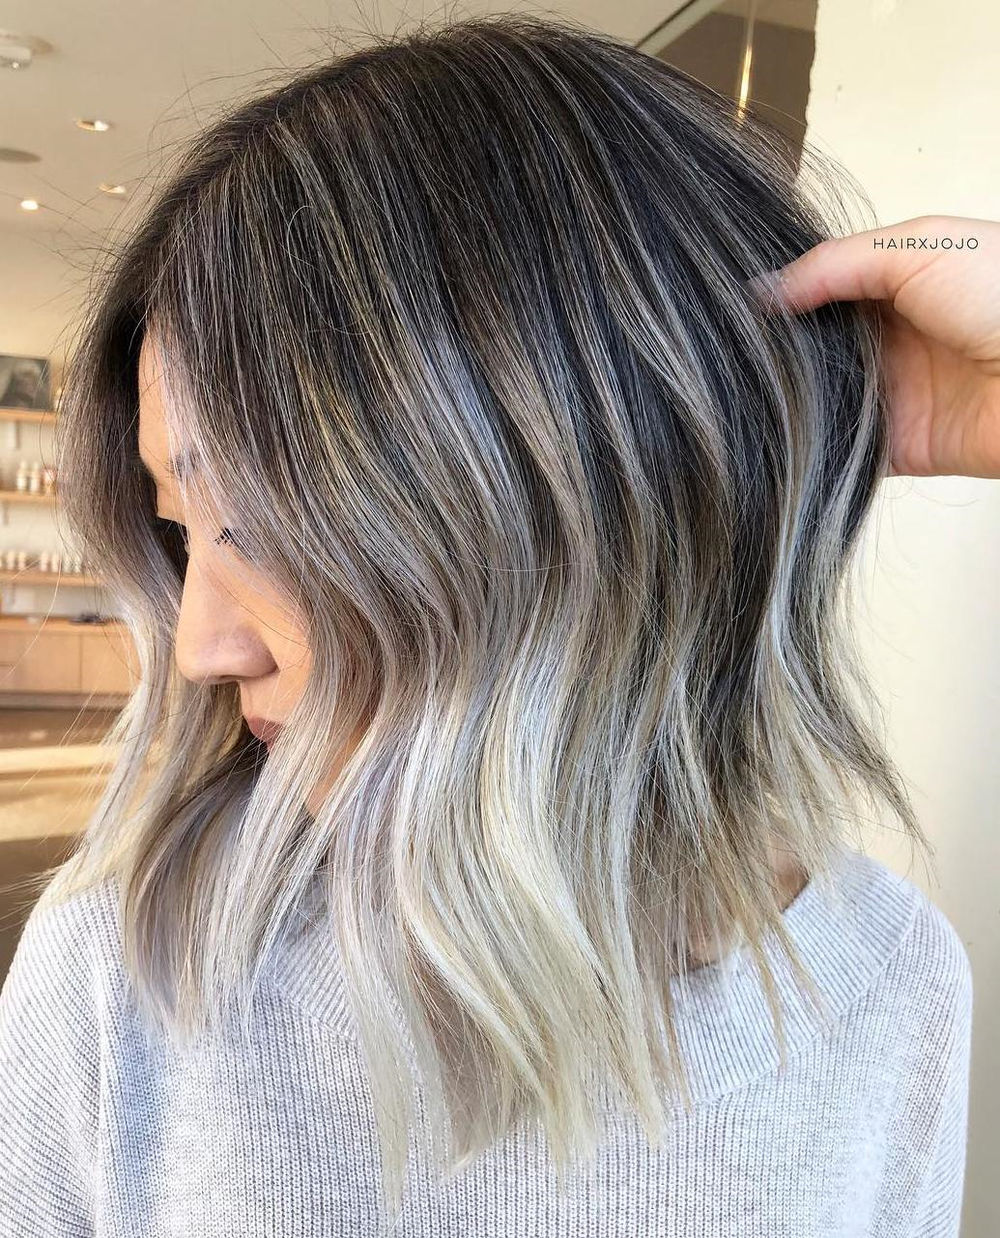 Cool Bronde Lob with Silver Highlights